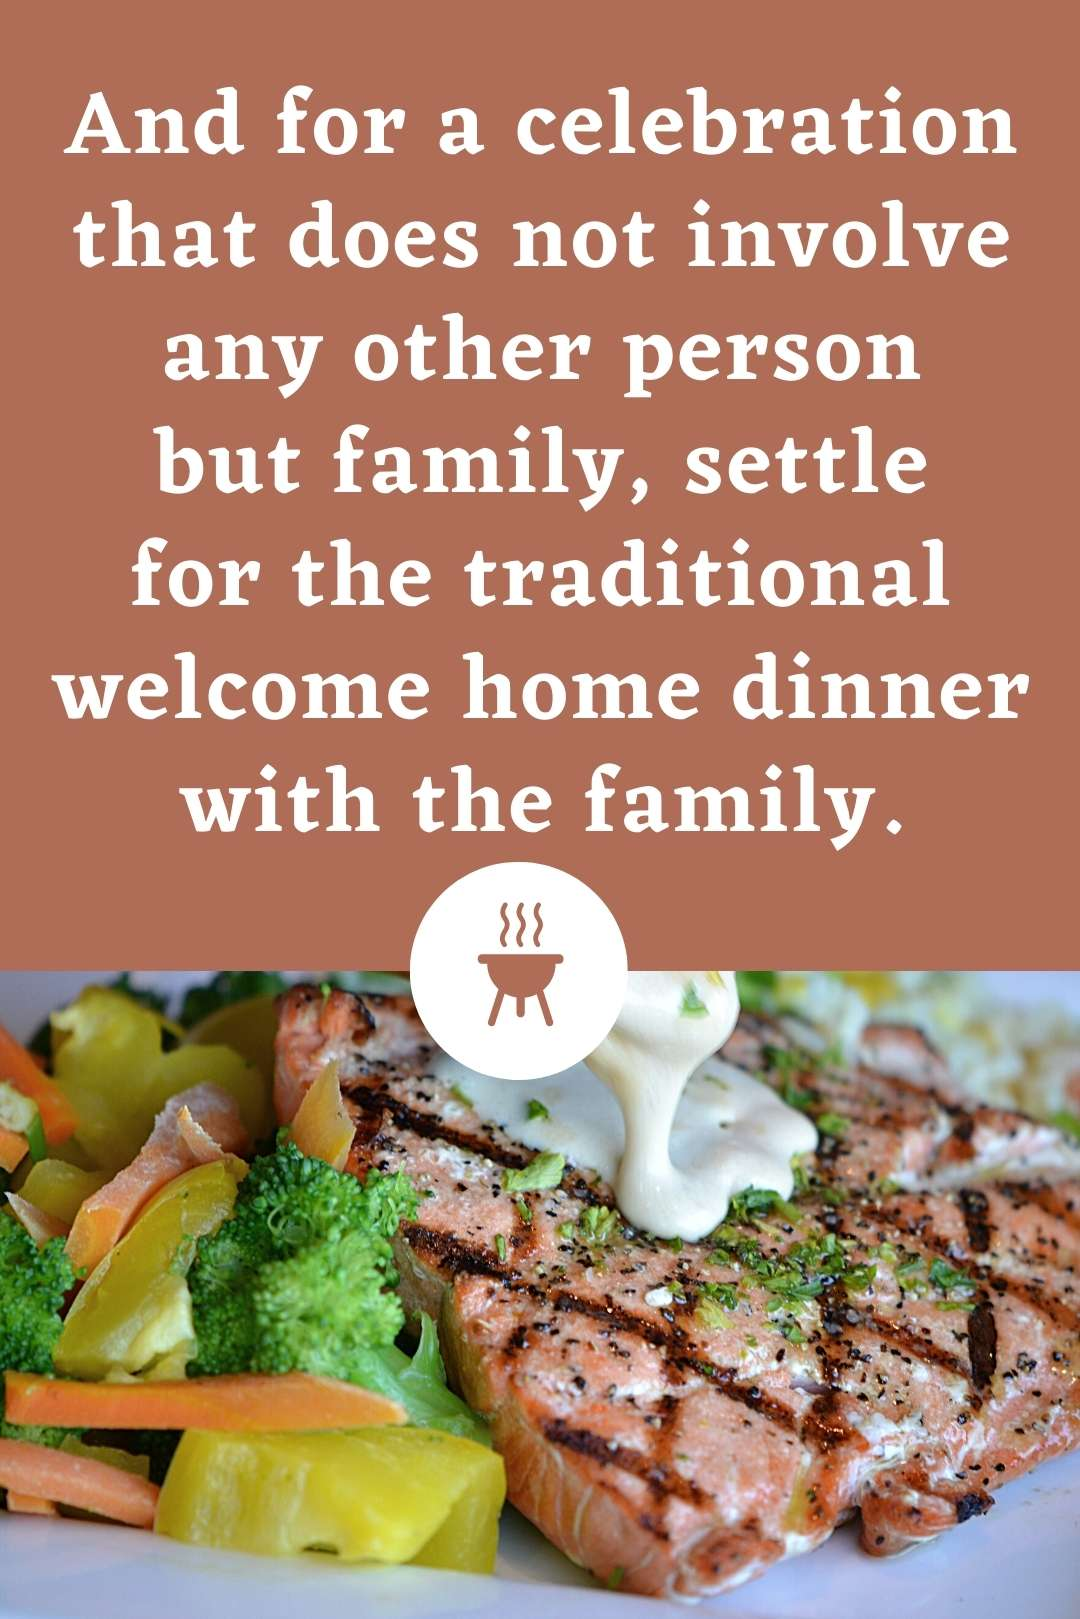 And for a celebration that does not involve any other person but family, settle for the traditional welcome home dinner with the family.